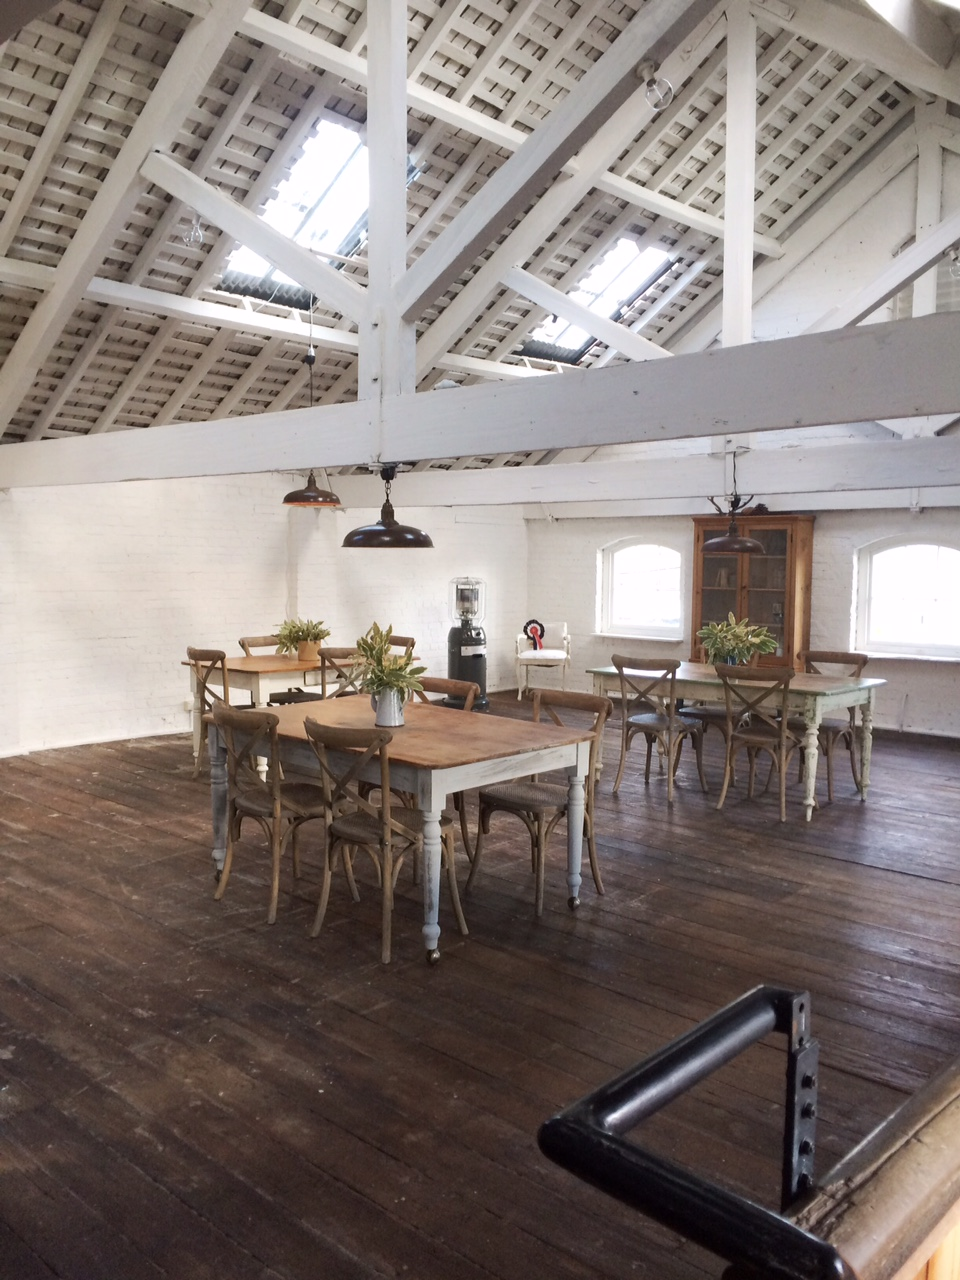 Beautiful open floor plan work space or shop at The Black Hen.  Photographed by Marley & Lockyer  ||  Friday Favorites at www.andersonandgrant.com